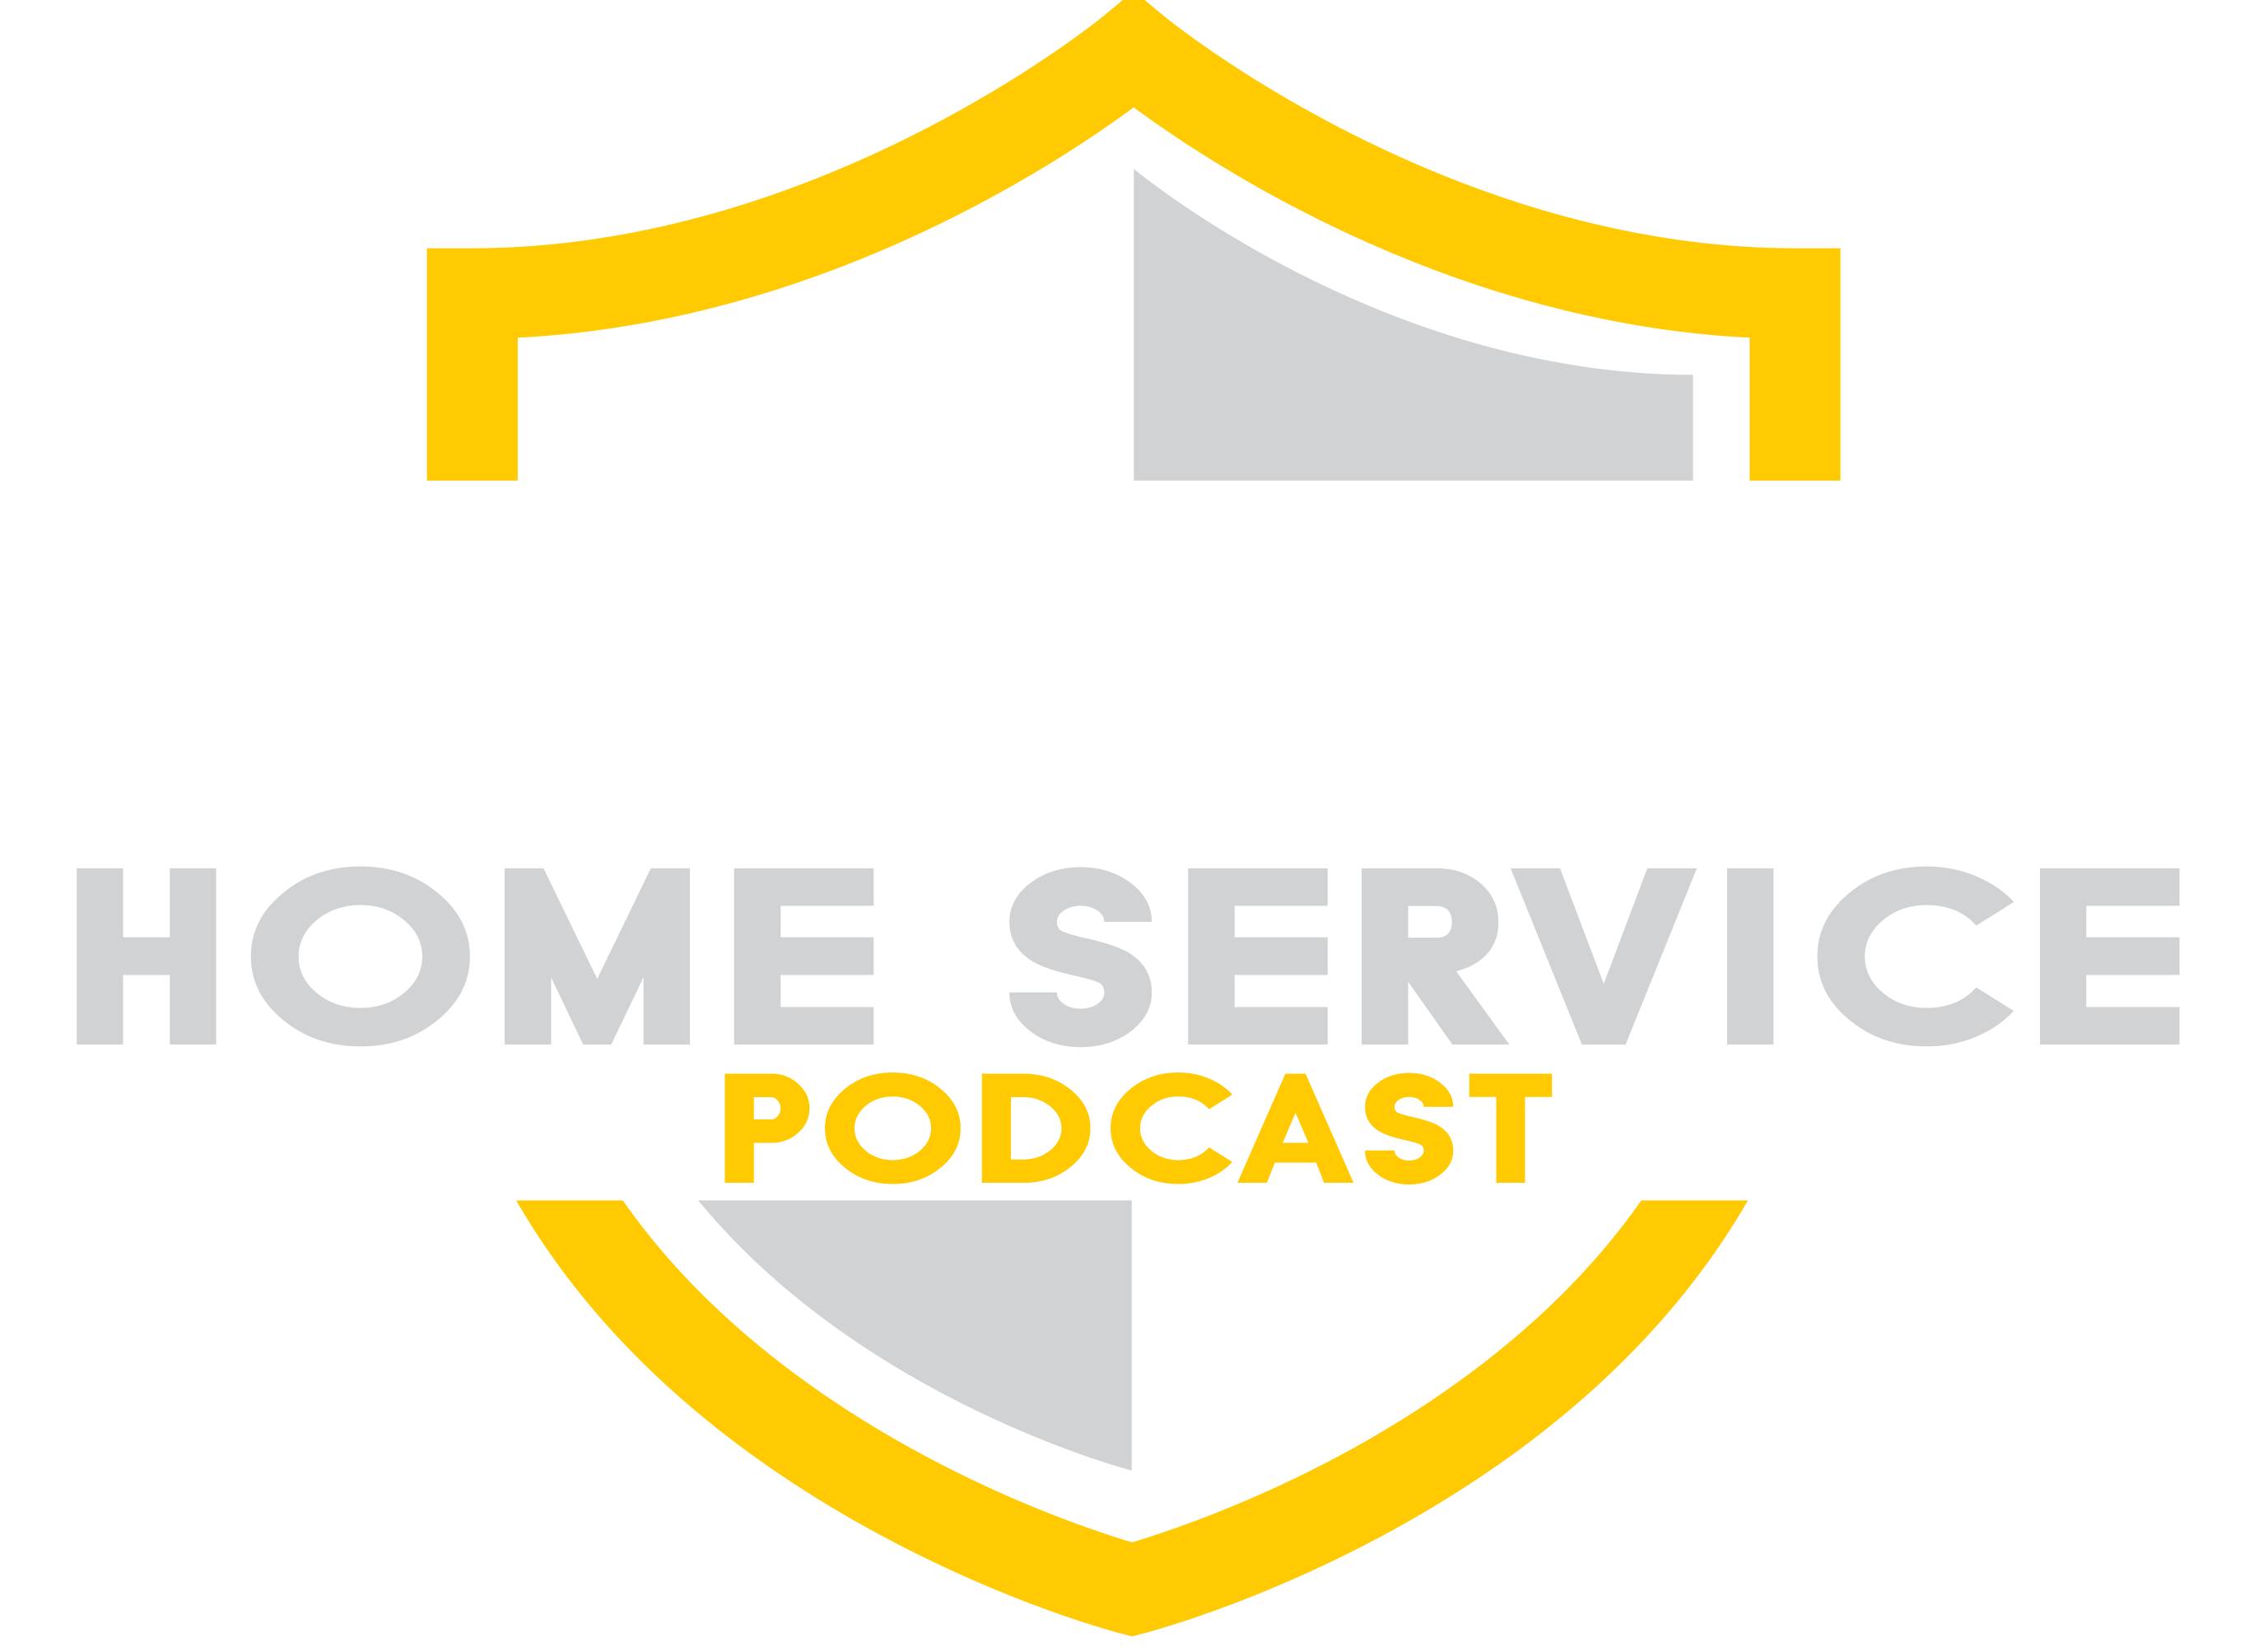 Absolute Home Service Podcast